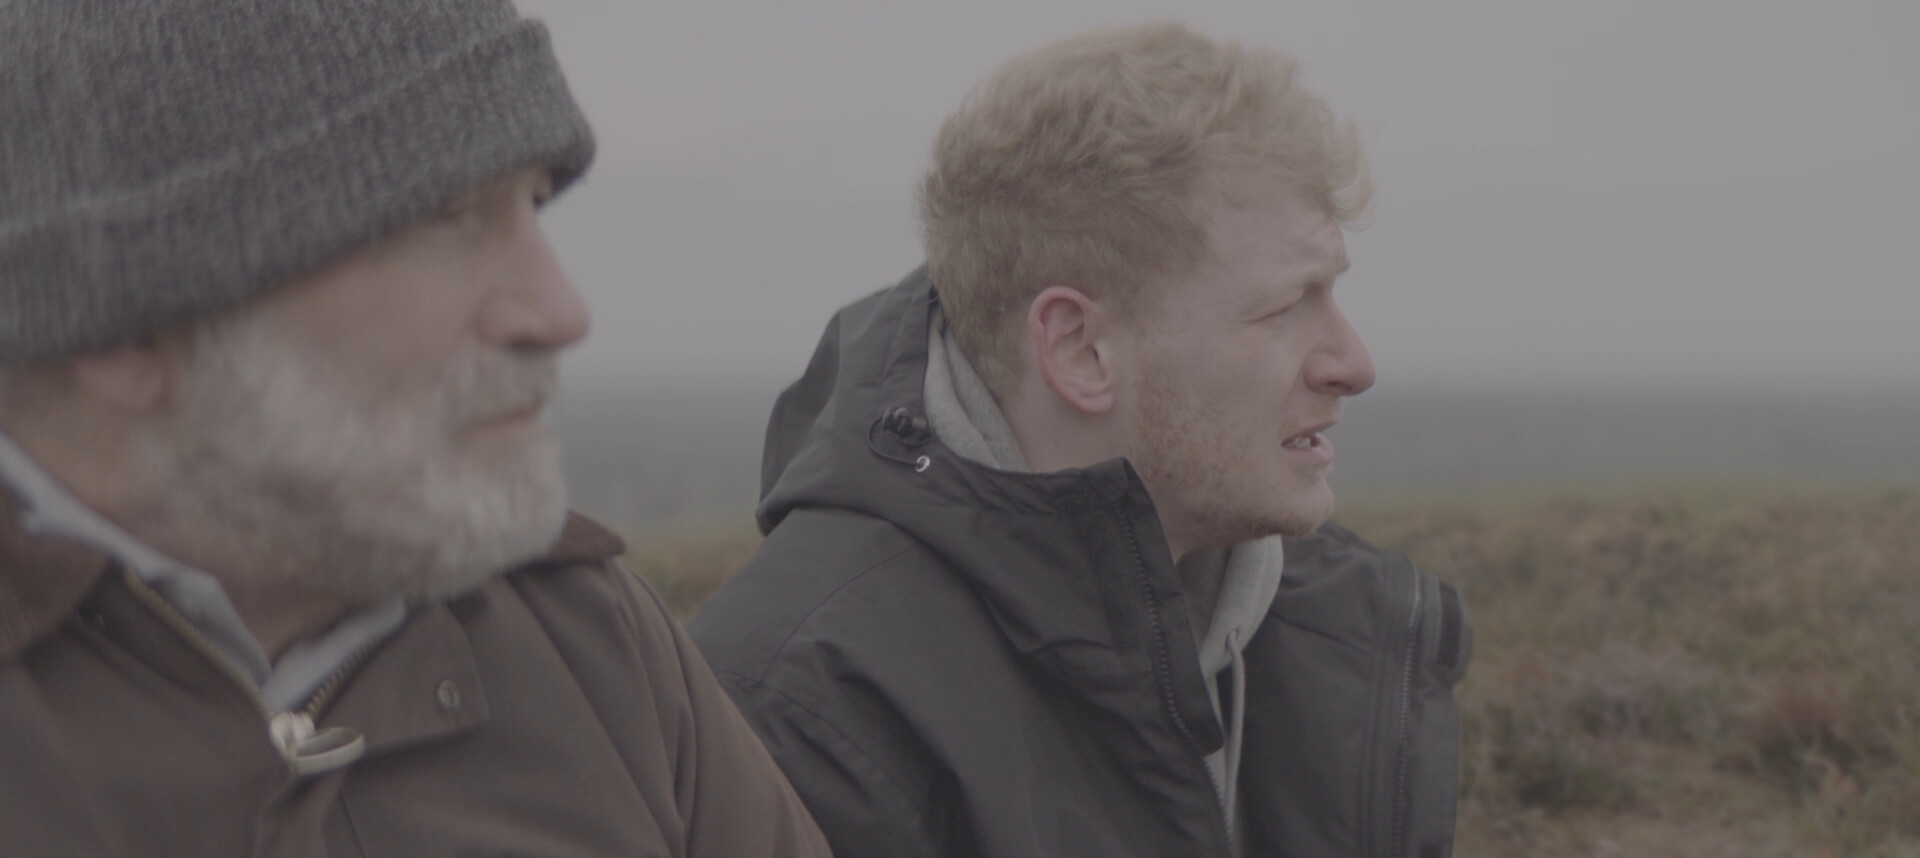 A DMP for another student film - 'Decay'. Working on this film was memorable for the rather painful ratio of DMP to roto :)